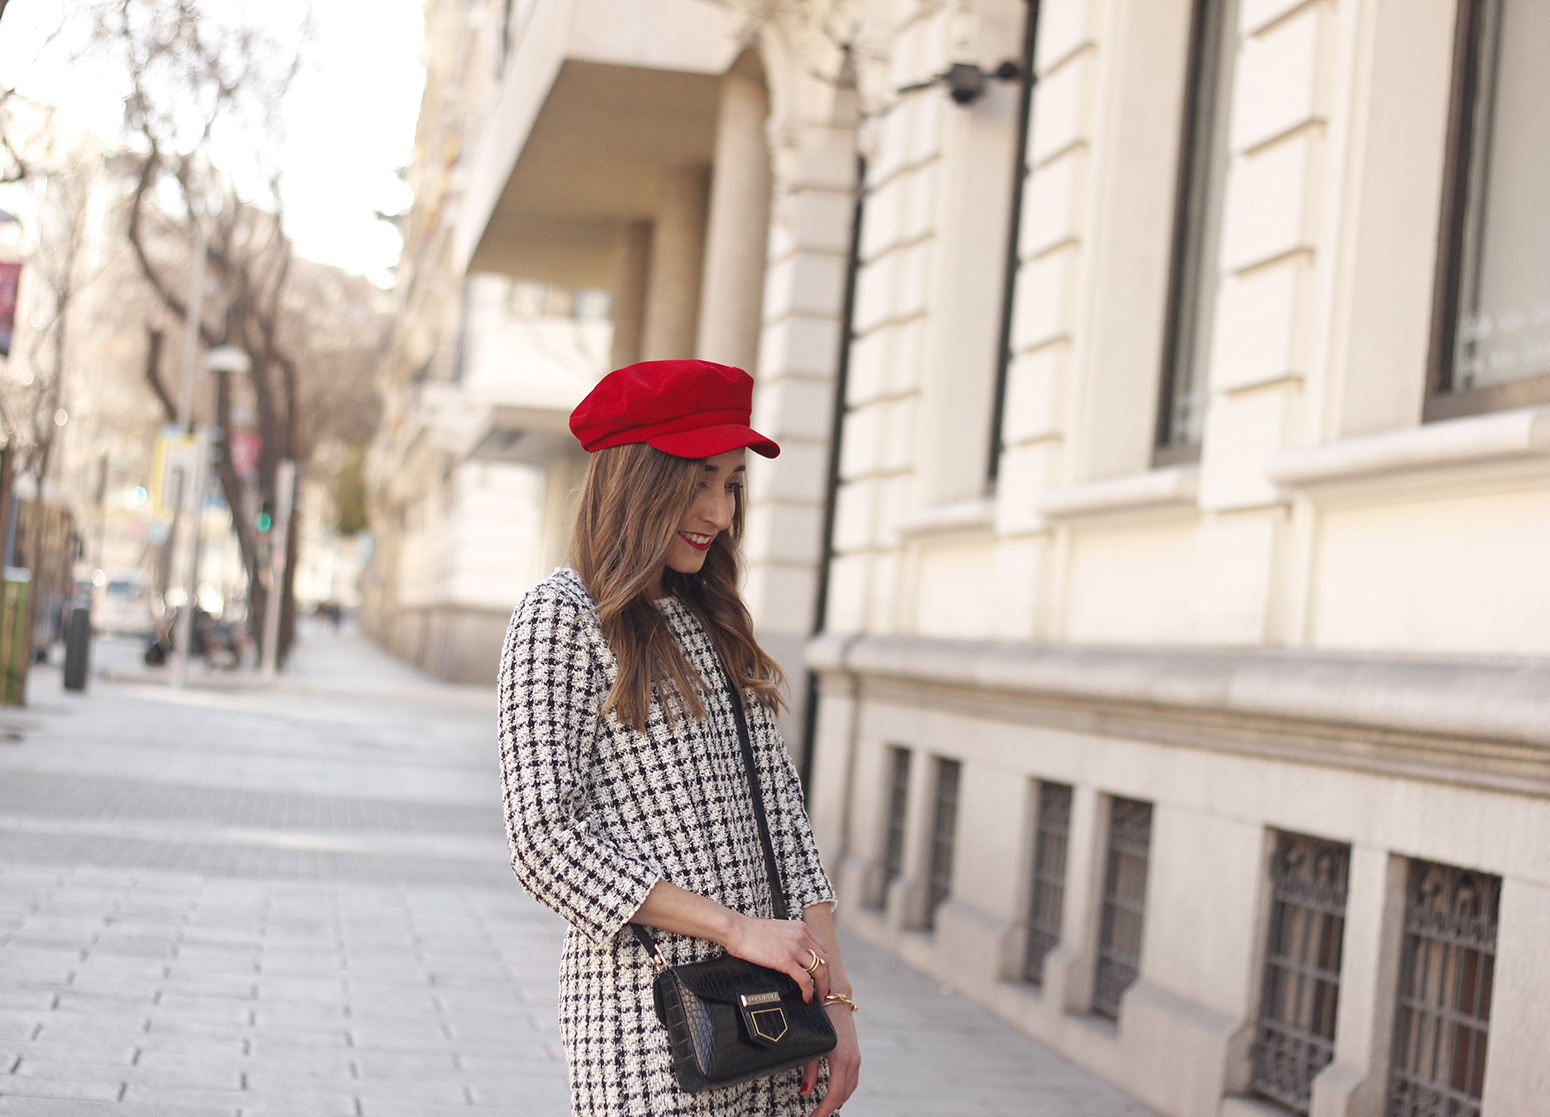 squares dress red over the knee boots givenchy bag red cap winter outfit look invierno11